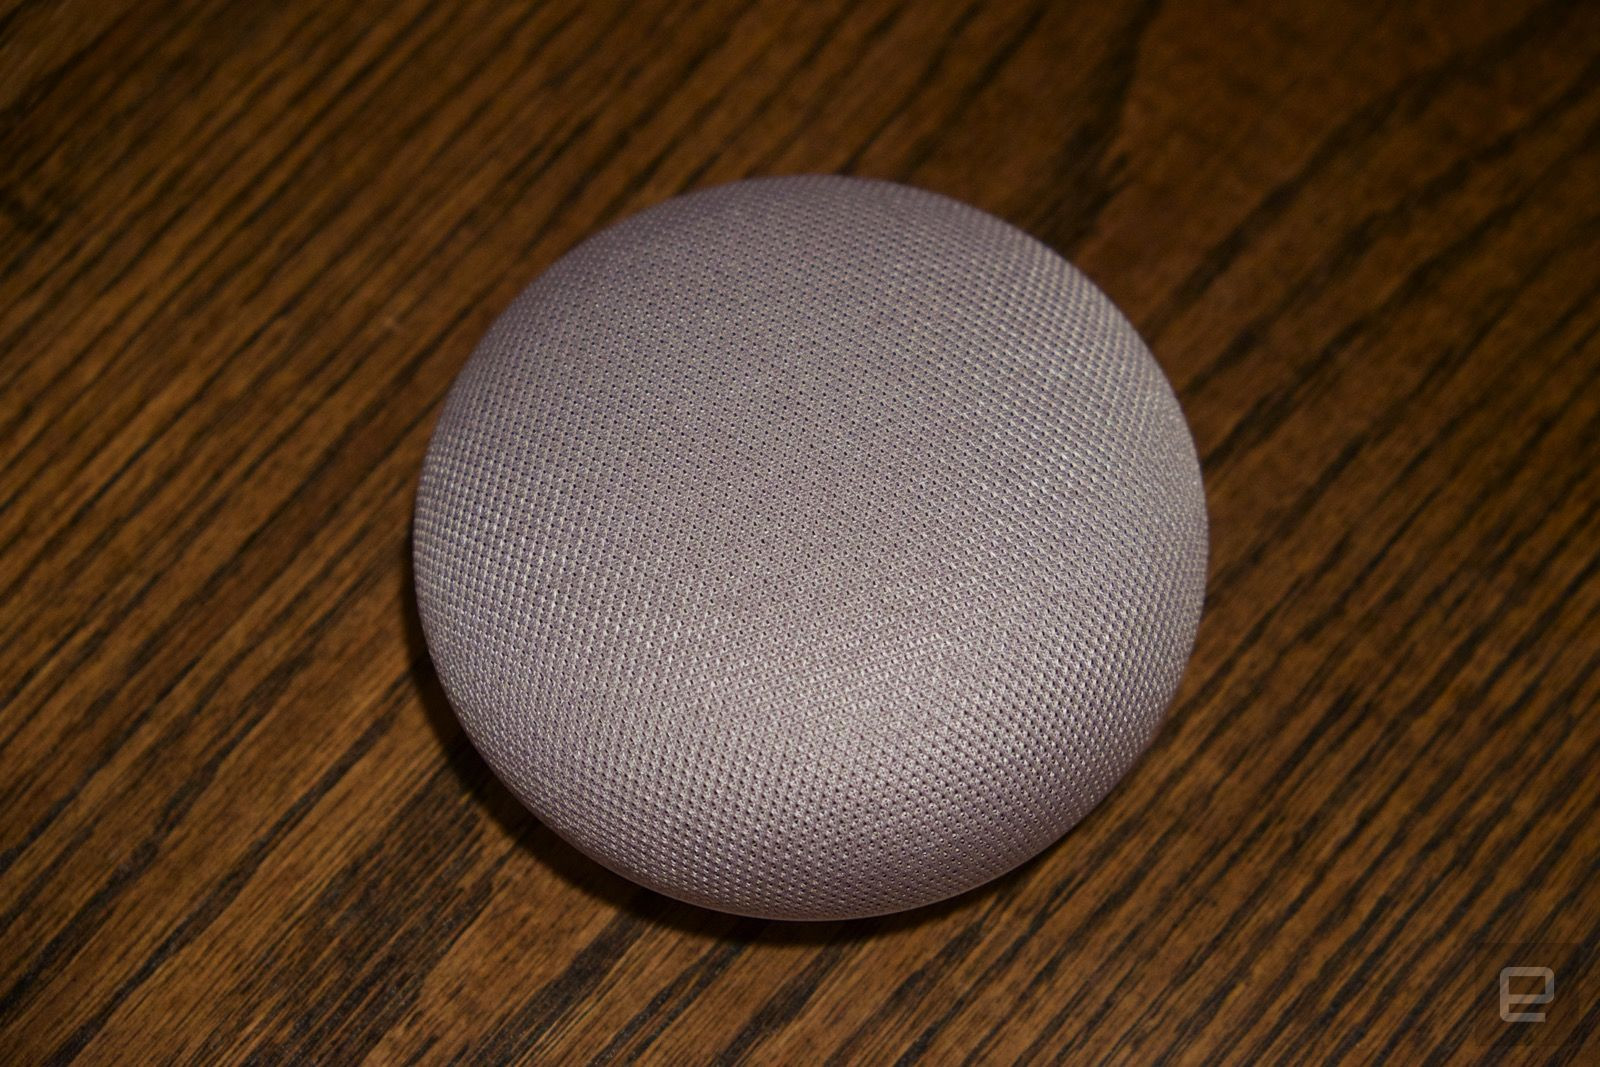 Orange Glo Hardwood Floor Cleaner Of Google Home Mini Review Taking Aim at the Echo Dot Intended for that Said there are some Differences to Note About the Home Mini as Compared with the original Almost All Of which Come Down to One Thing Audio Quality